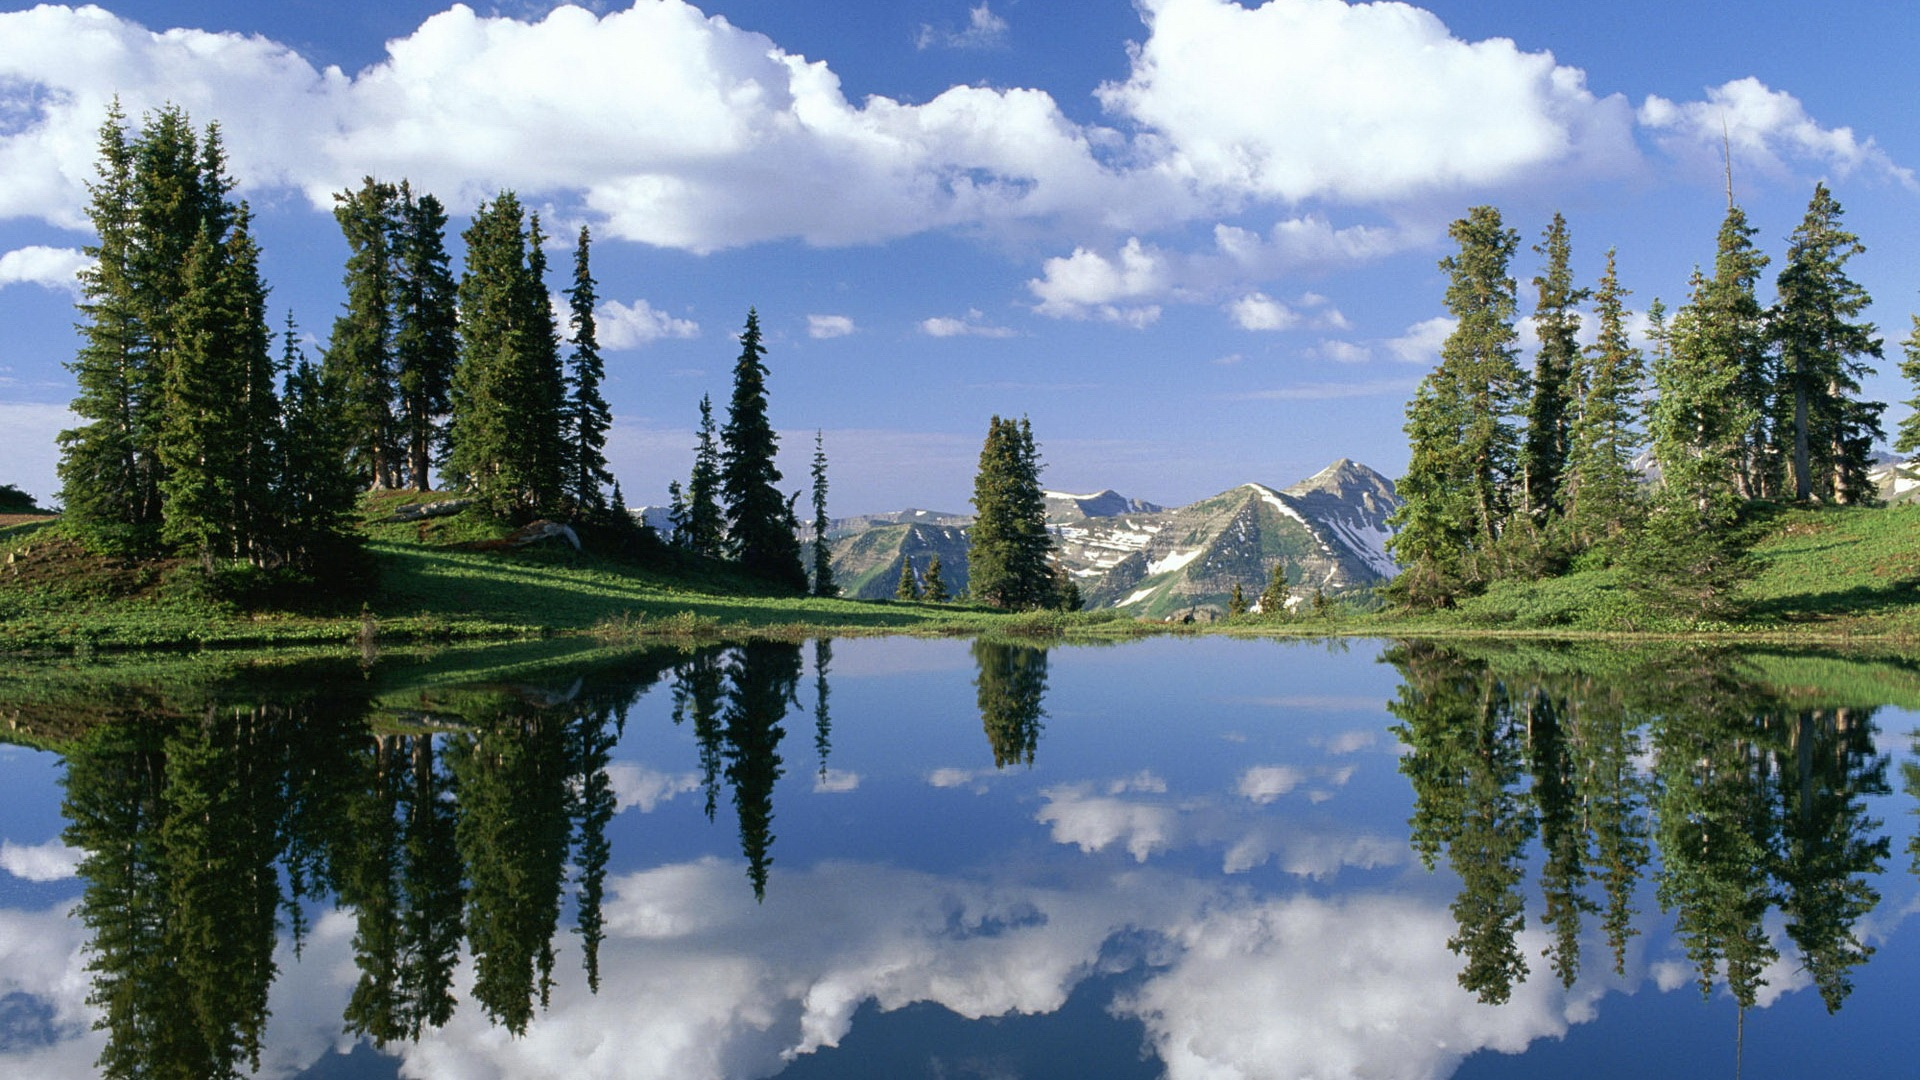 1080p Wallpapers Landscape - HD Wallpapers Backgrounds of Your Choice